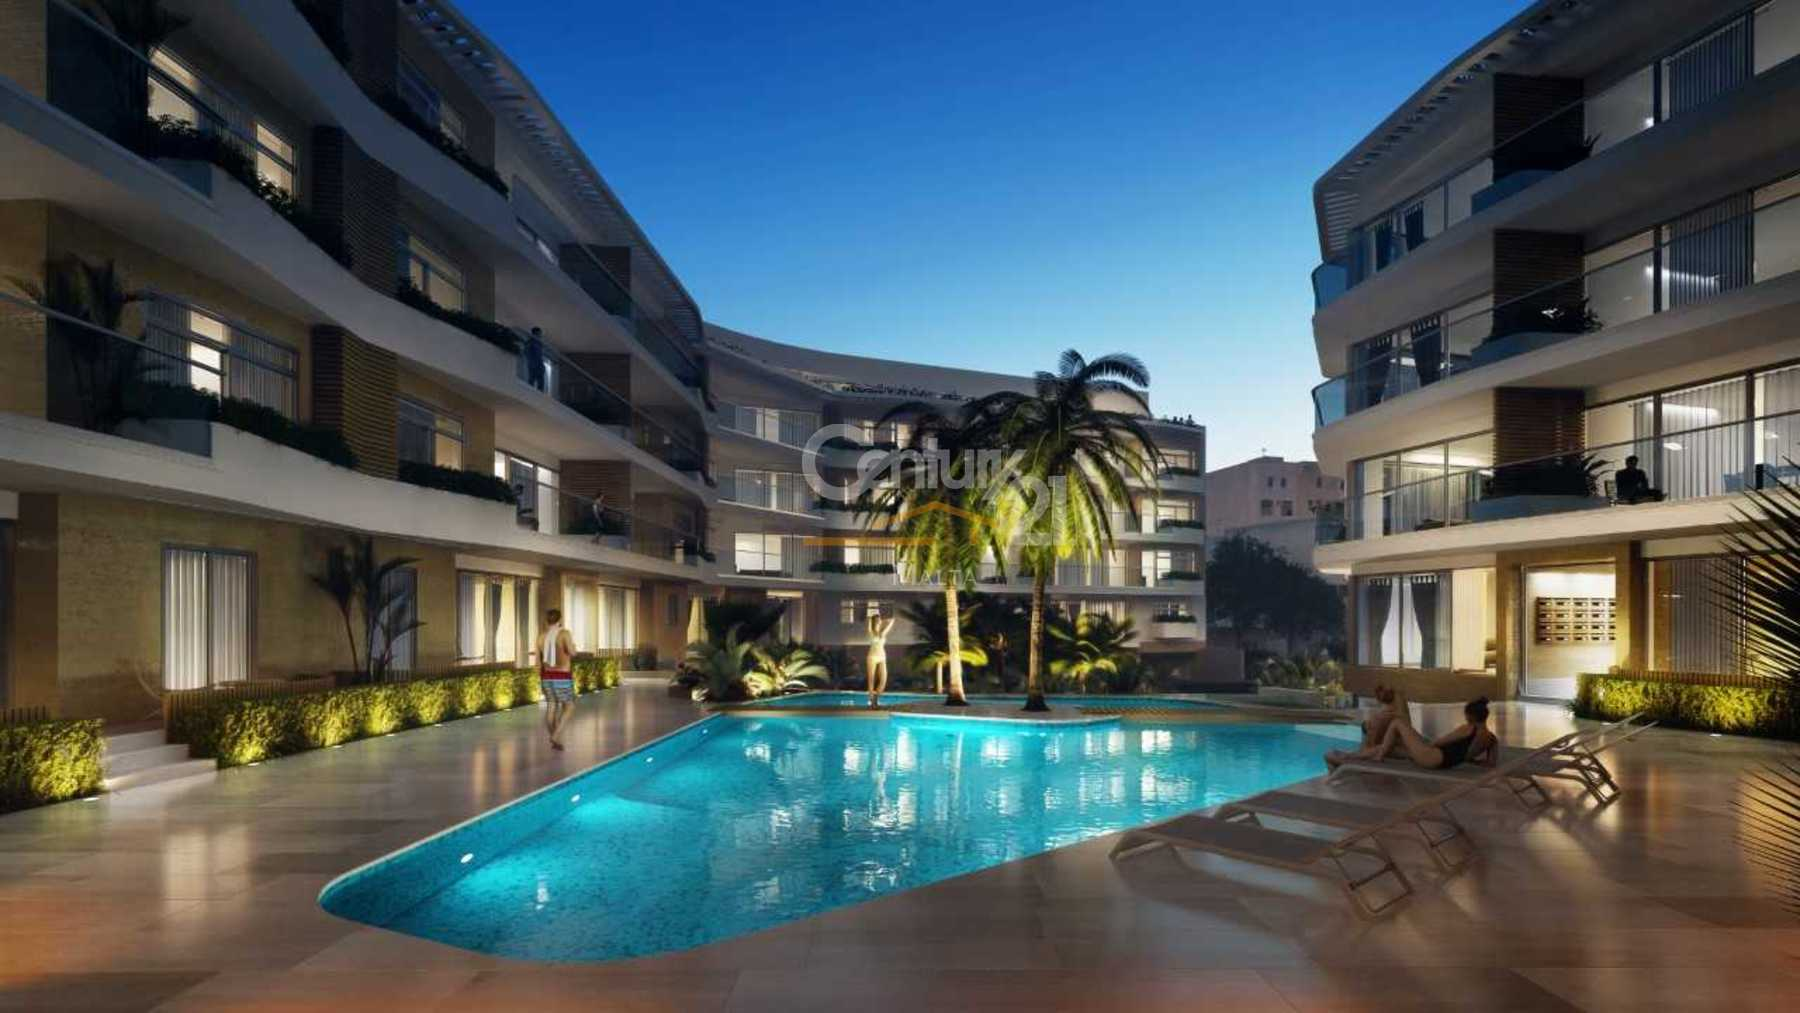 Finished Apartment For Sale in Swieqi - Century 21 Malta